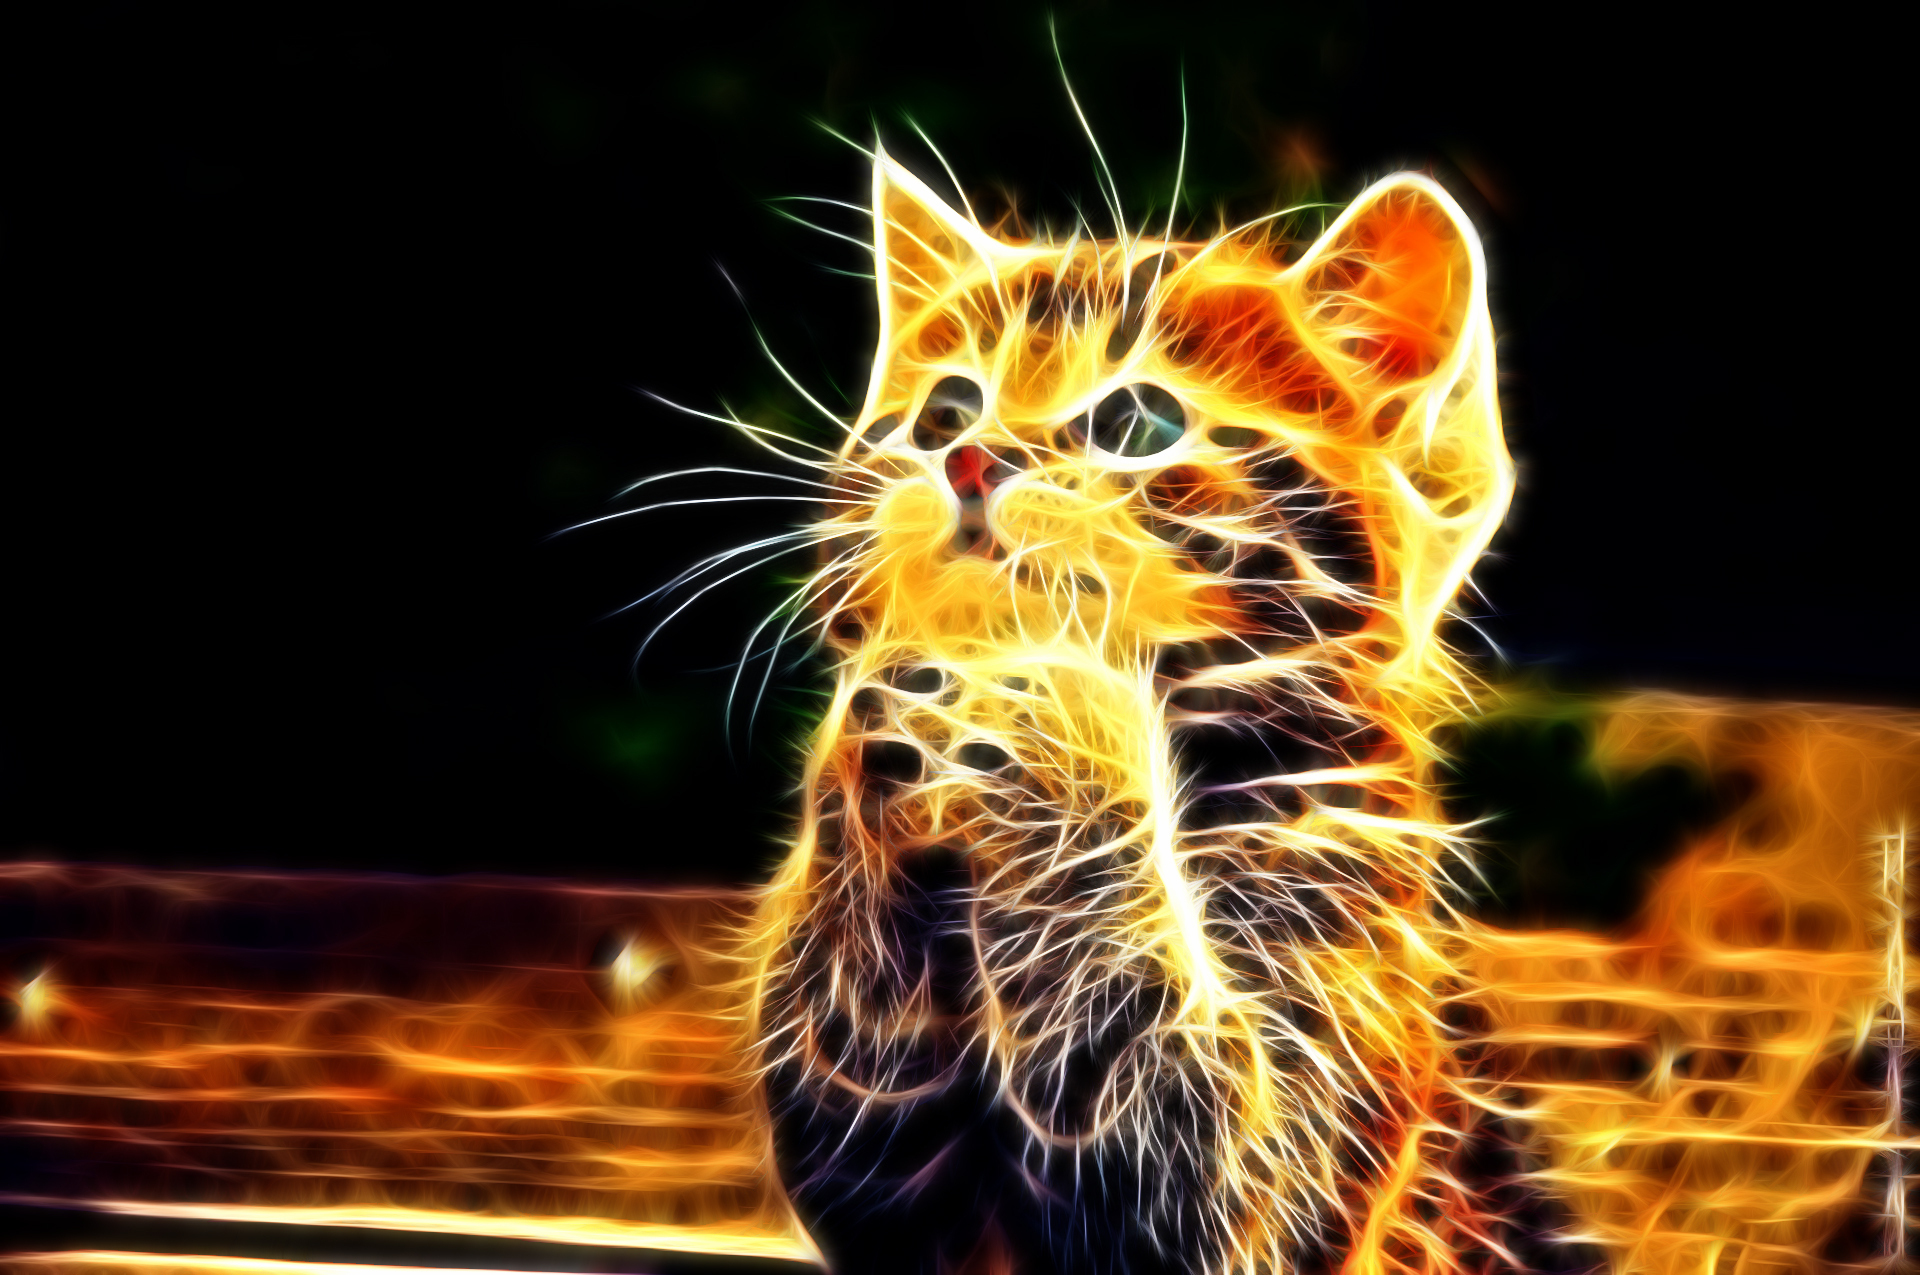 Illuminated Fire Kitten, Wallpaper 3D 1023.1 Kb